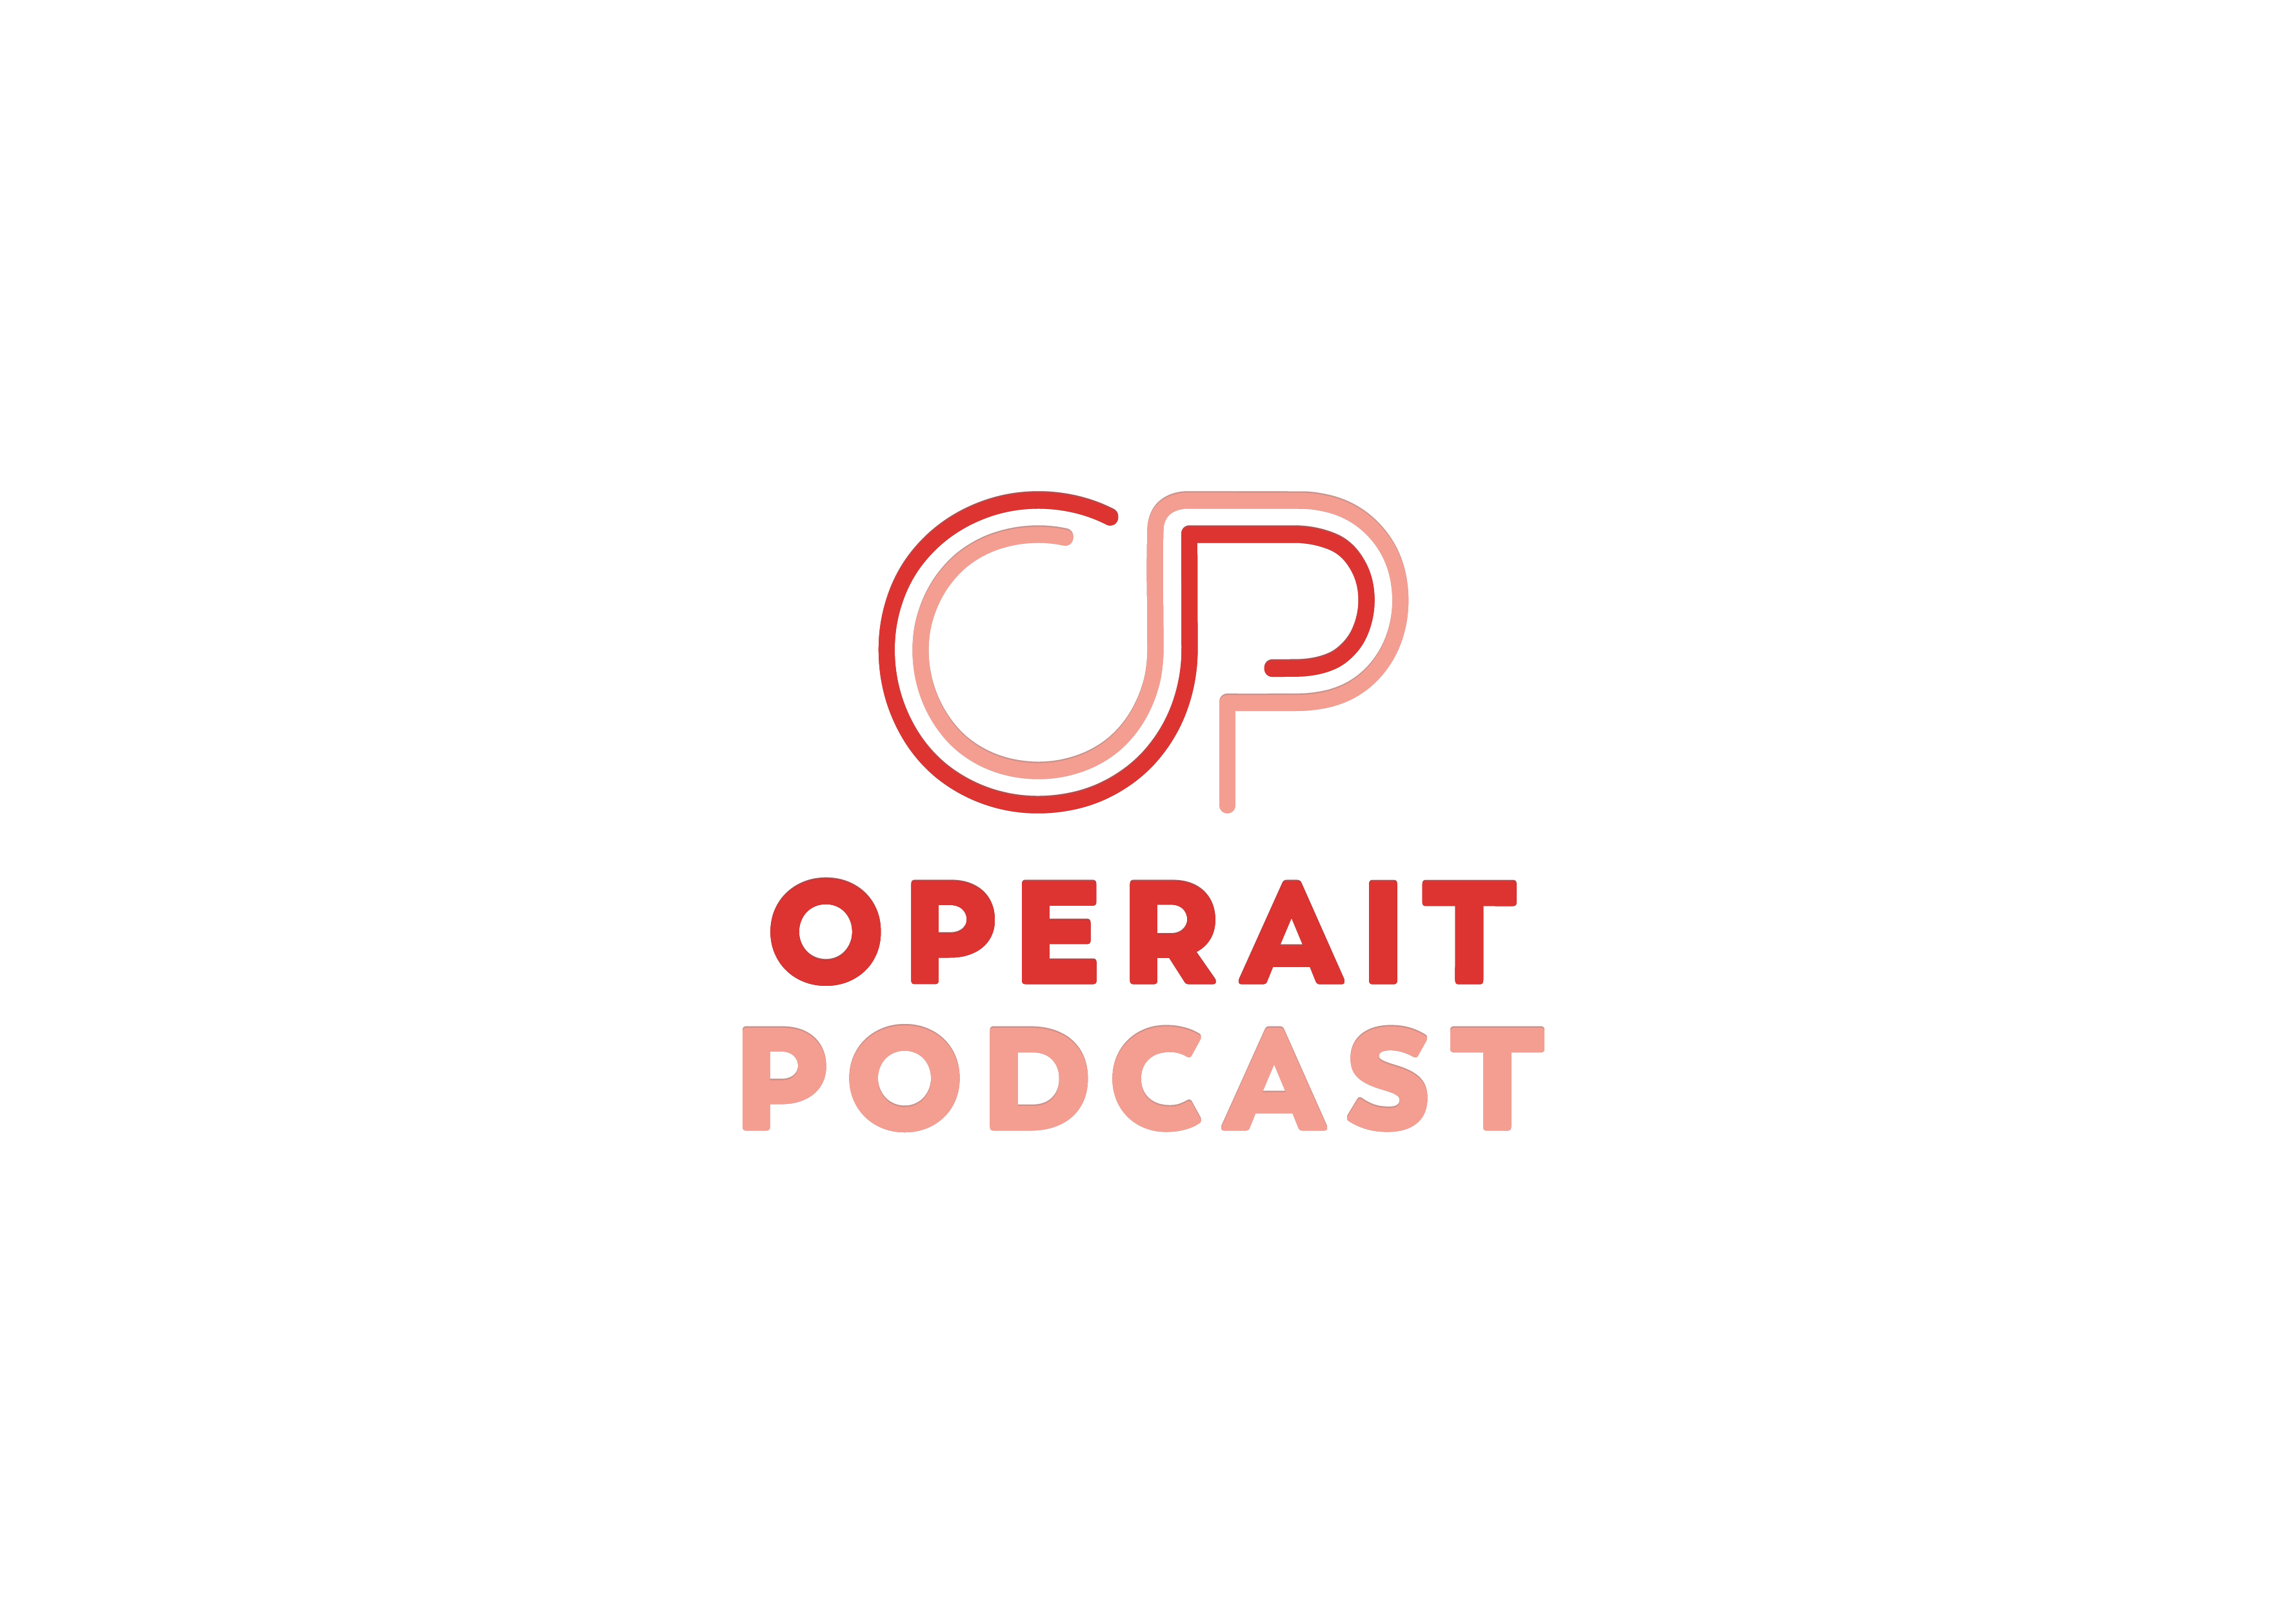 Operait_Podcast_Stacked-01